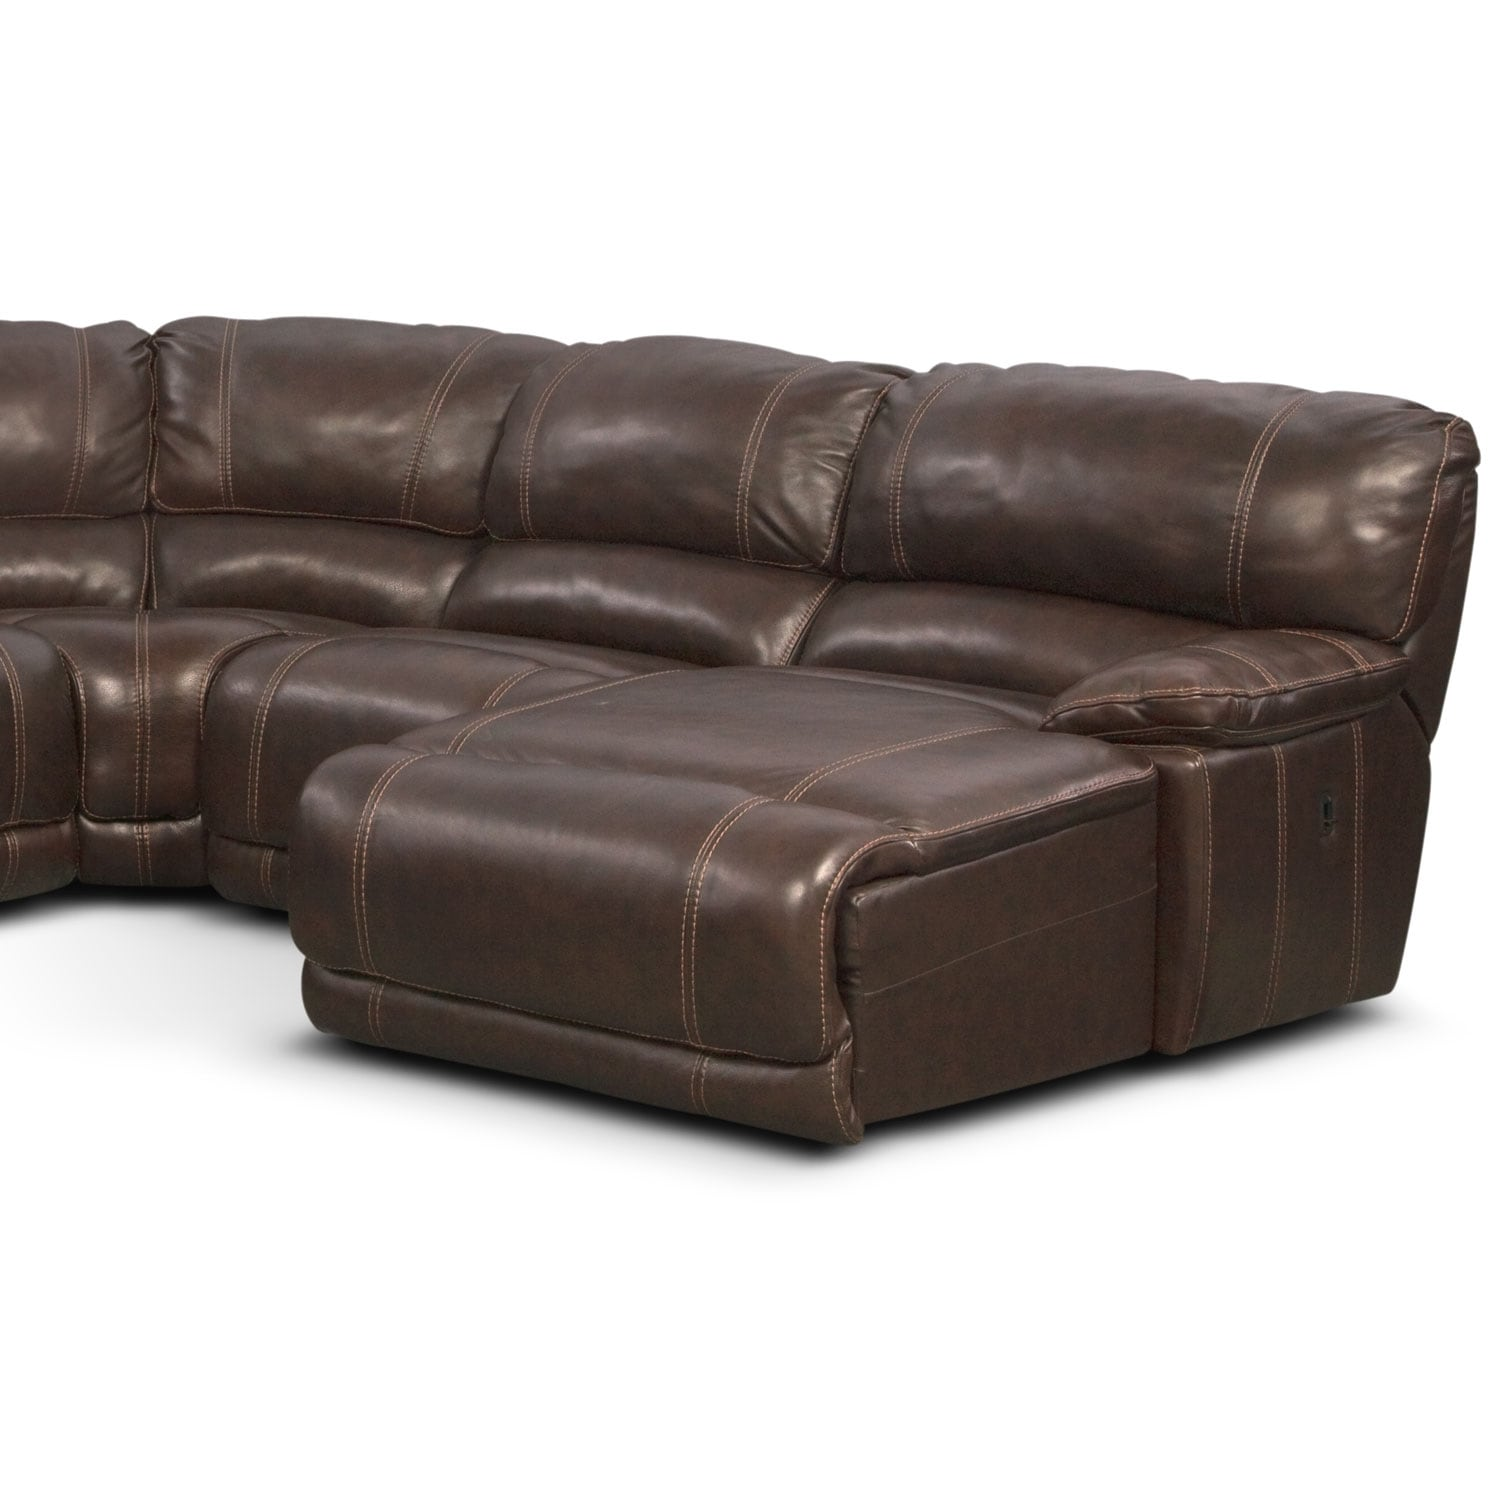 St malo 6 piece power reclining sectional with right for Brown sectional sofa with chaise